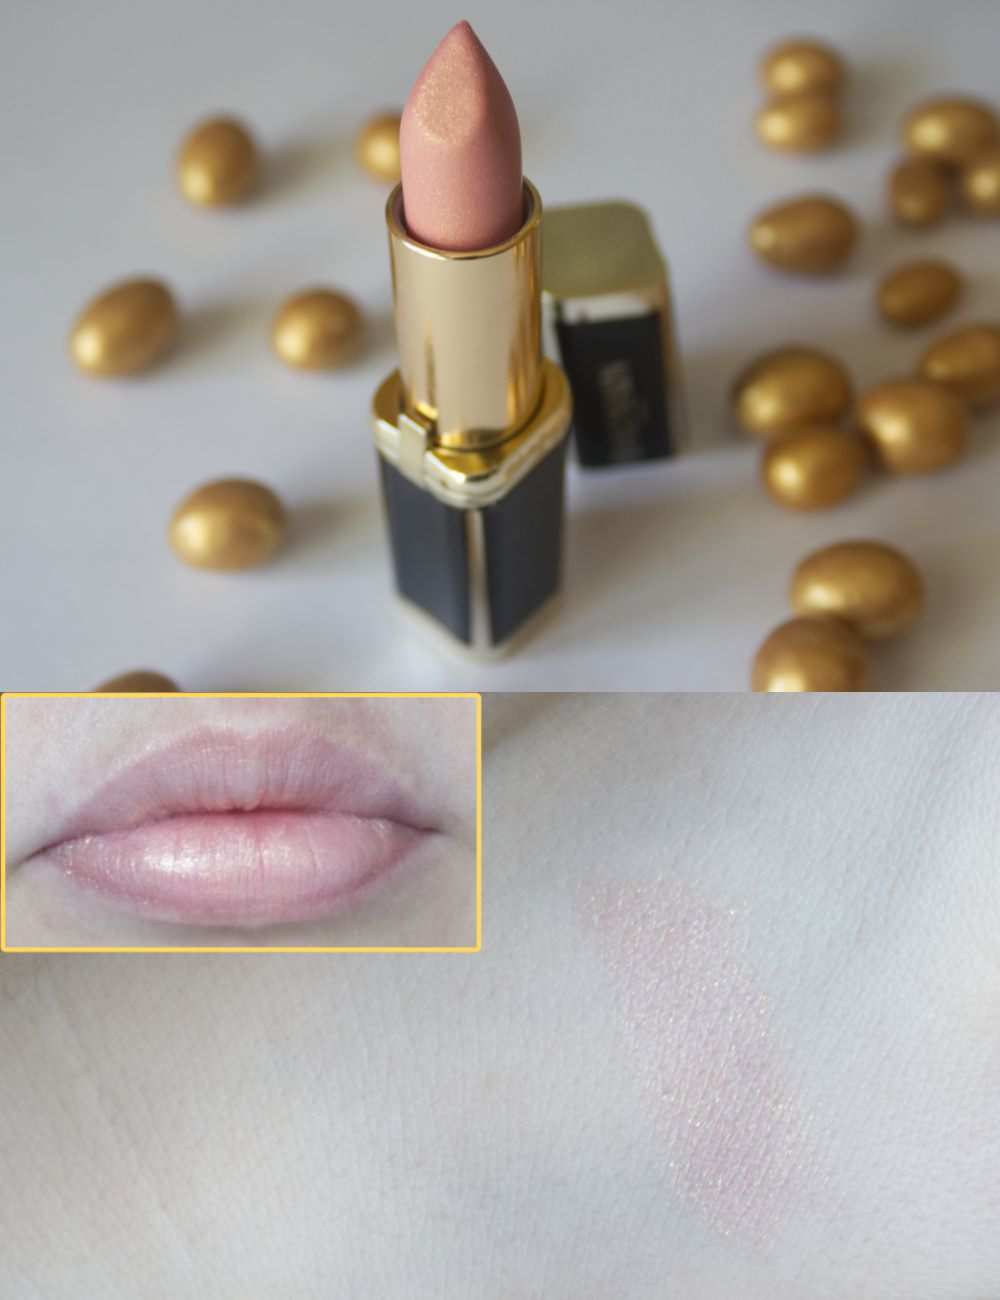 L'Oréal X Balmain Color Riche lipstick in the shade Confidence swatches